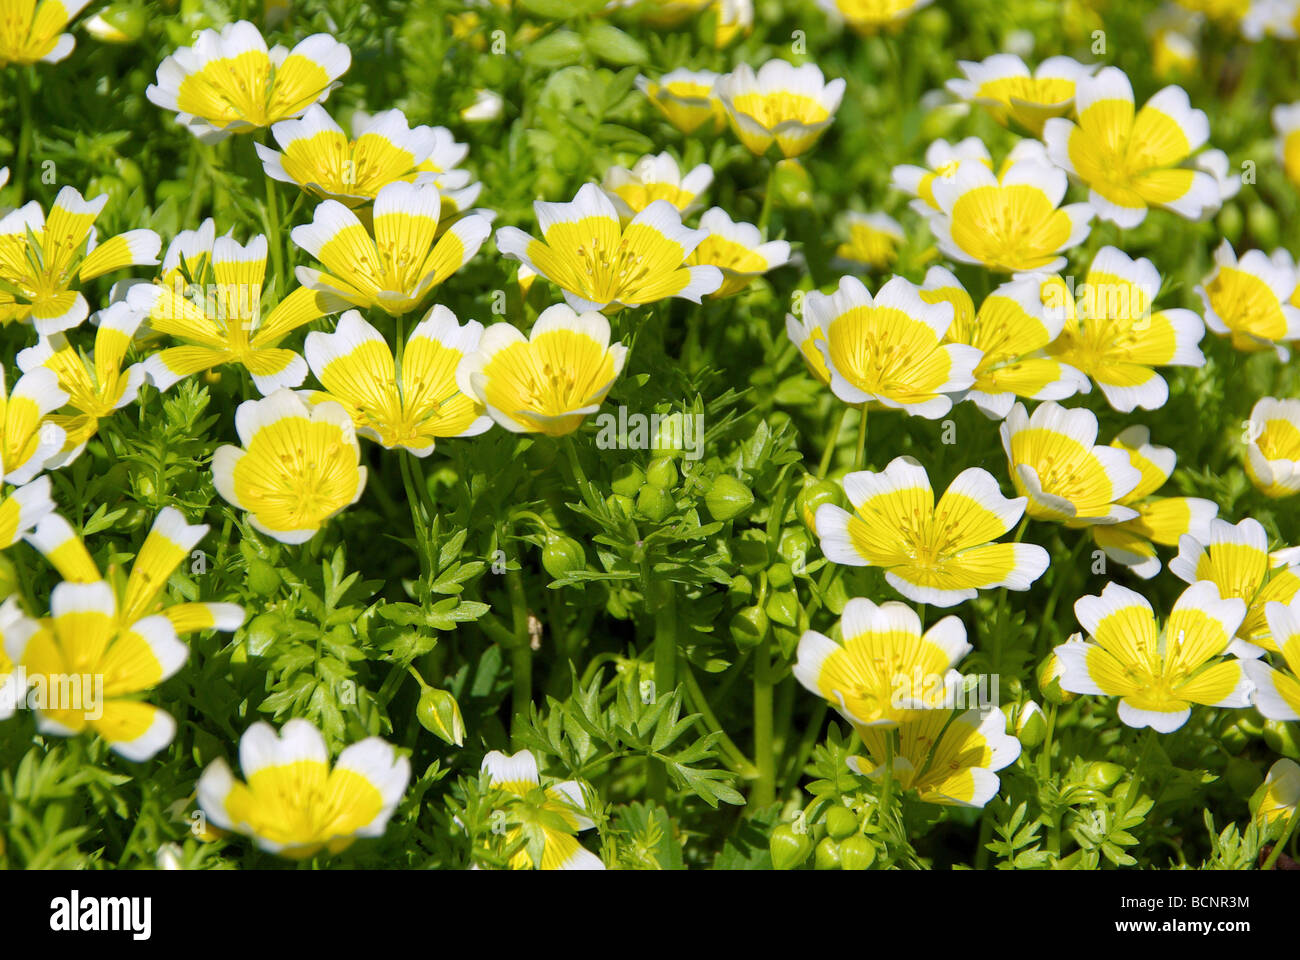 Sumpfblume poached egg plant 02 - Stock Image